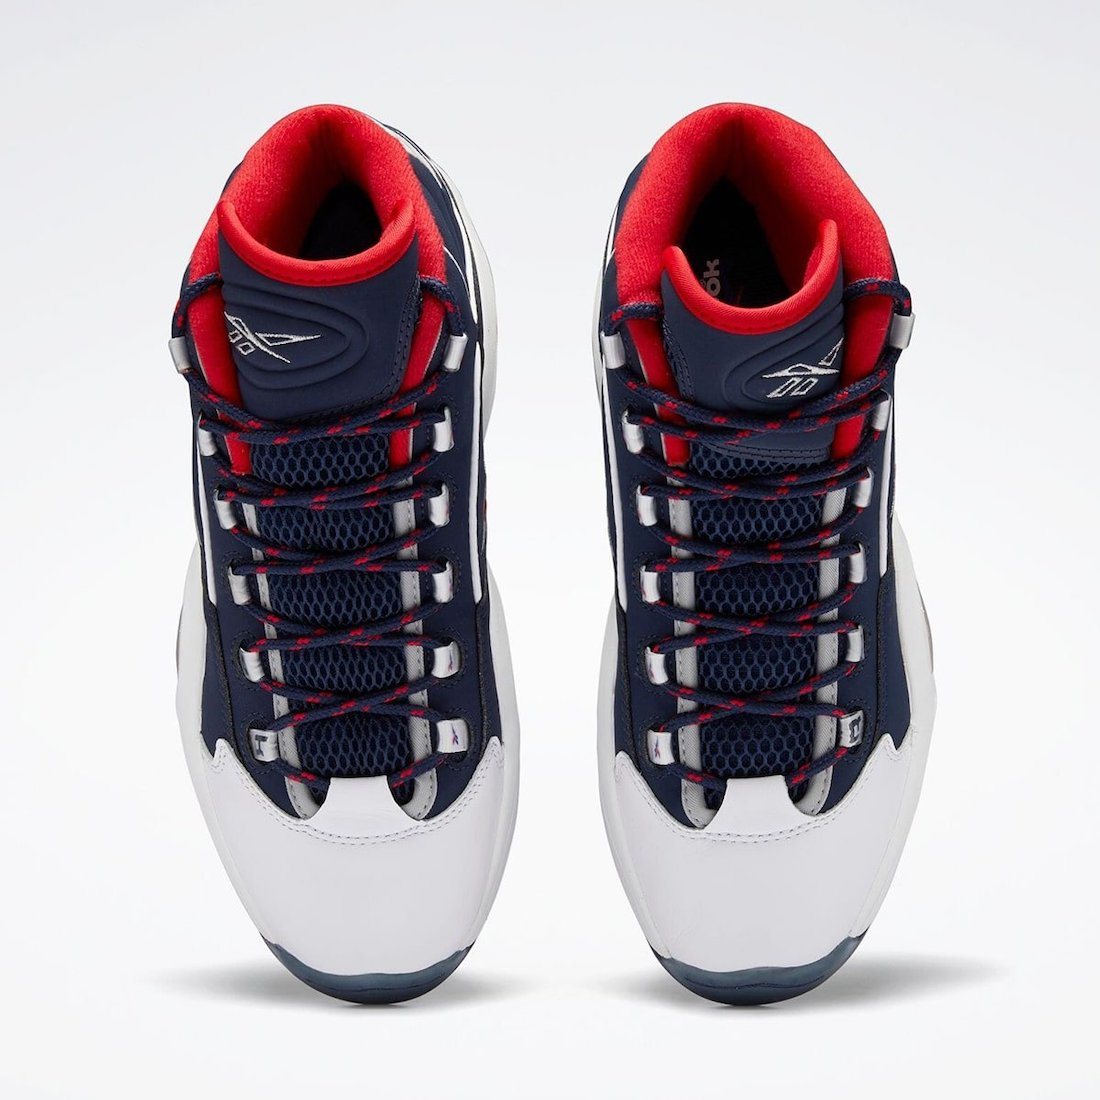 The Reebok Zig Kinetica II Edge Gore-Tex Comes Ready For Winter Team USA H01281 Release Date